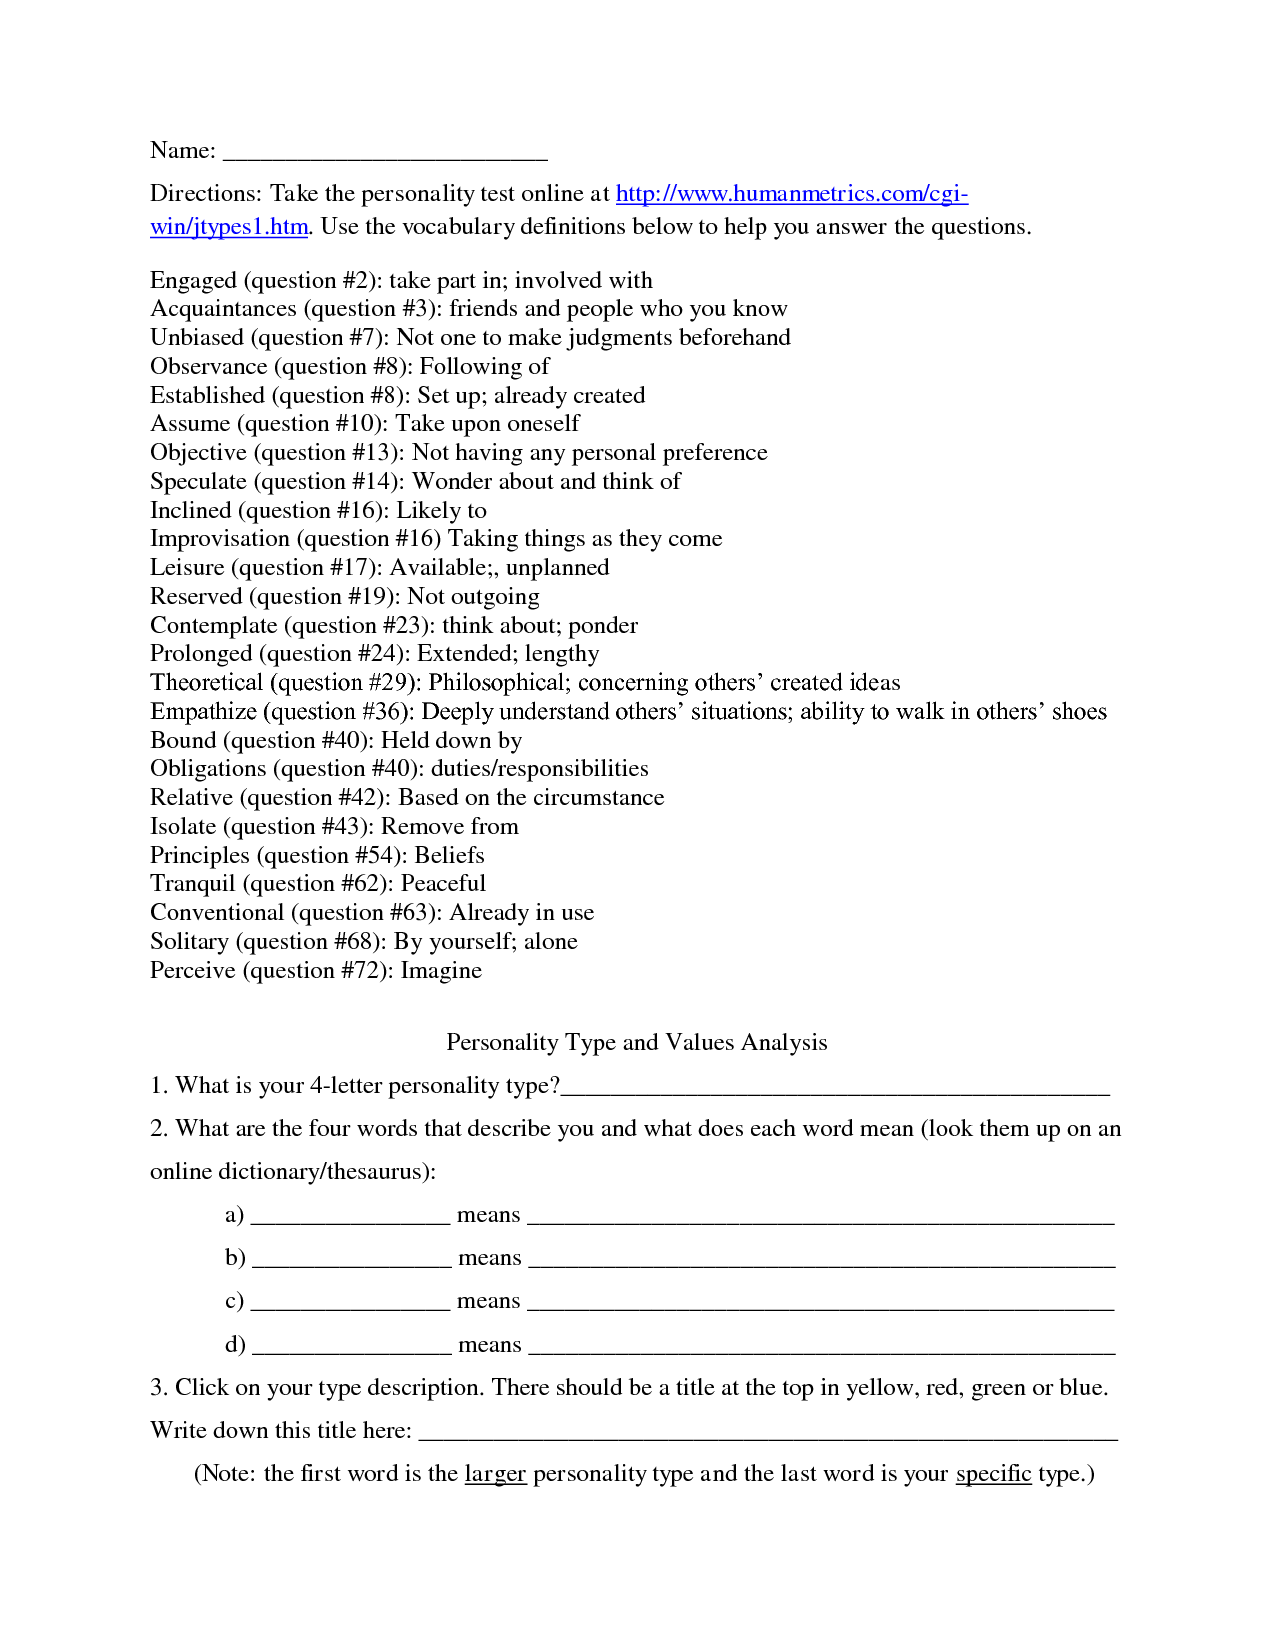 Personality Types Worksheet